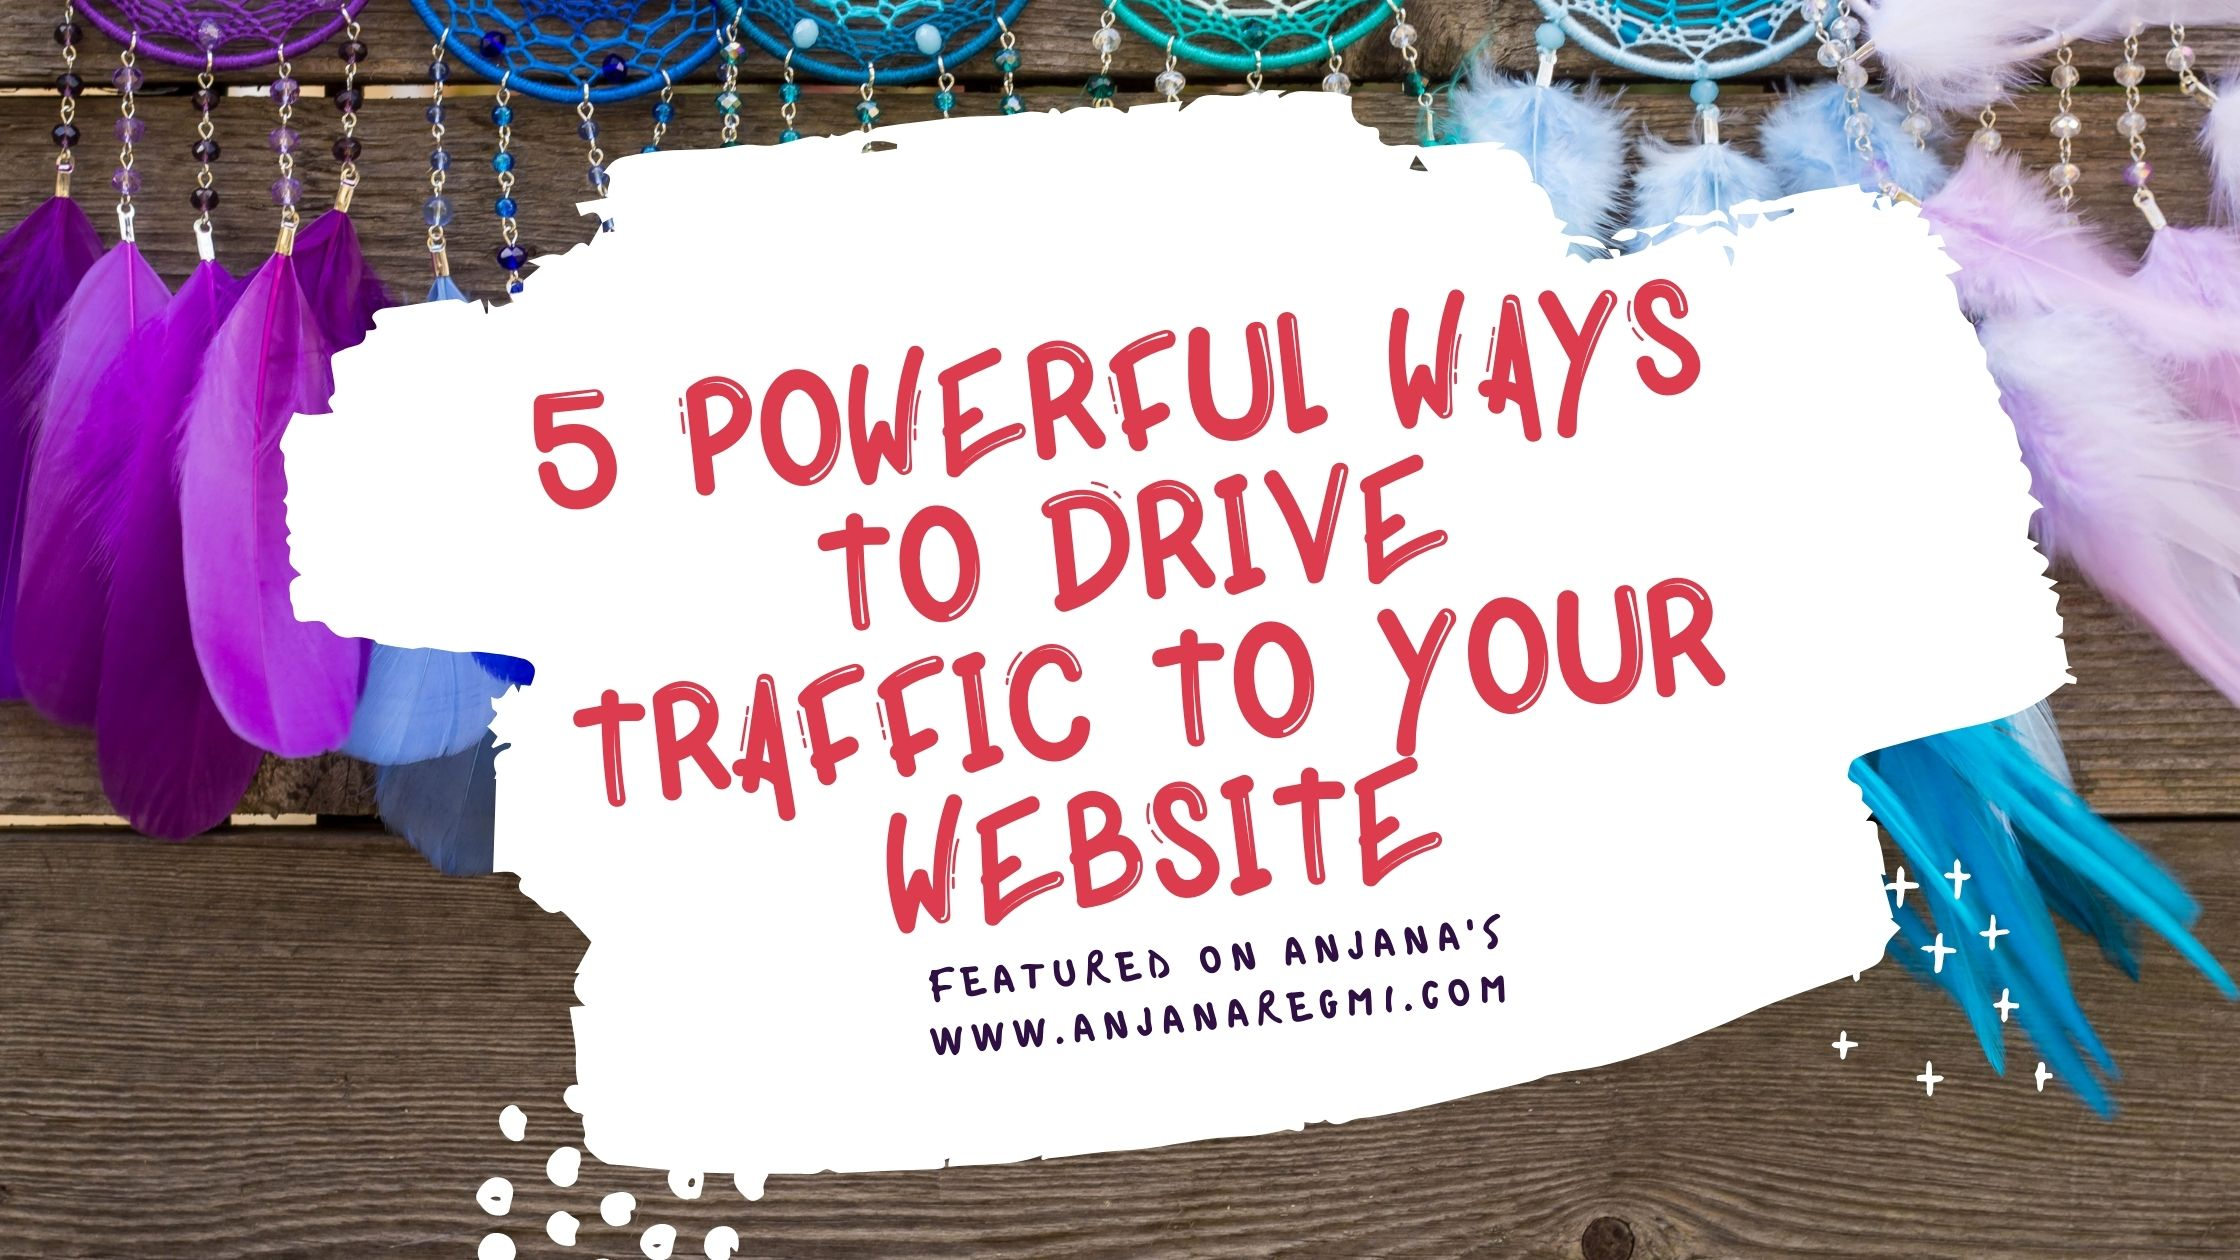 5 Powerful Ways to Drive traffic to your website